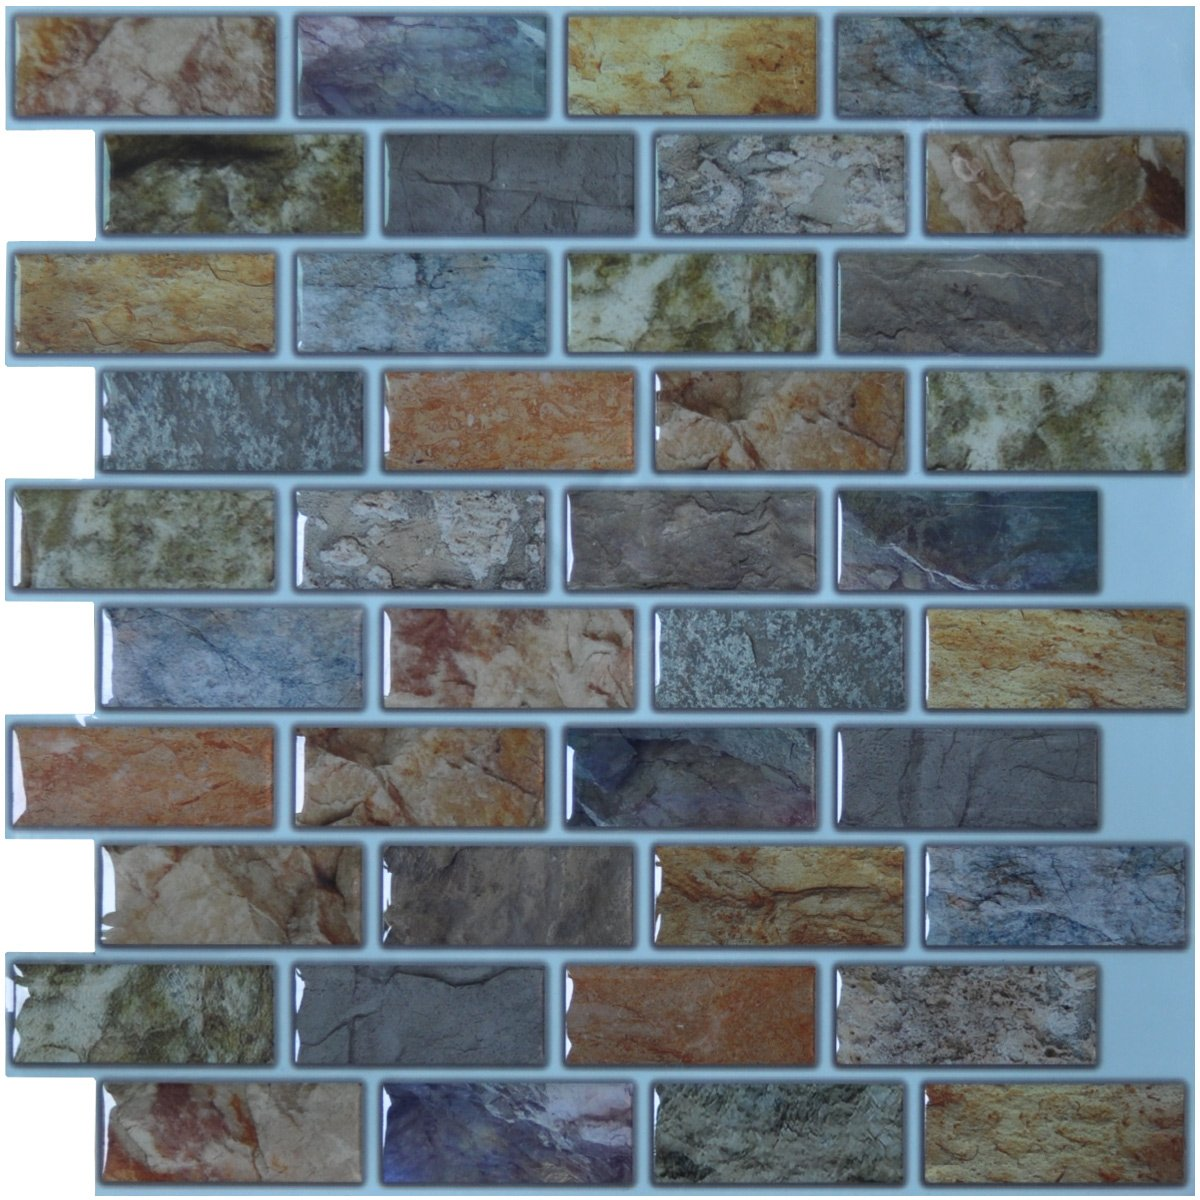 Peel And Stick Backsplash Tiles: Art3d Peel & Stick Bathroom/Kitchen Backsplash Tiles 6